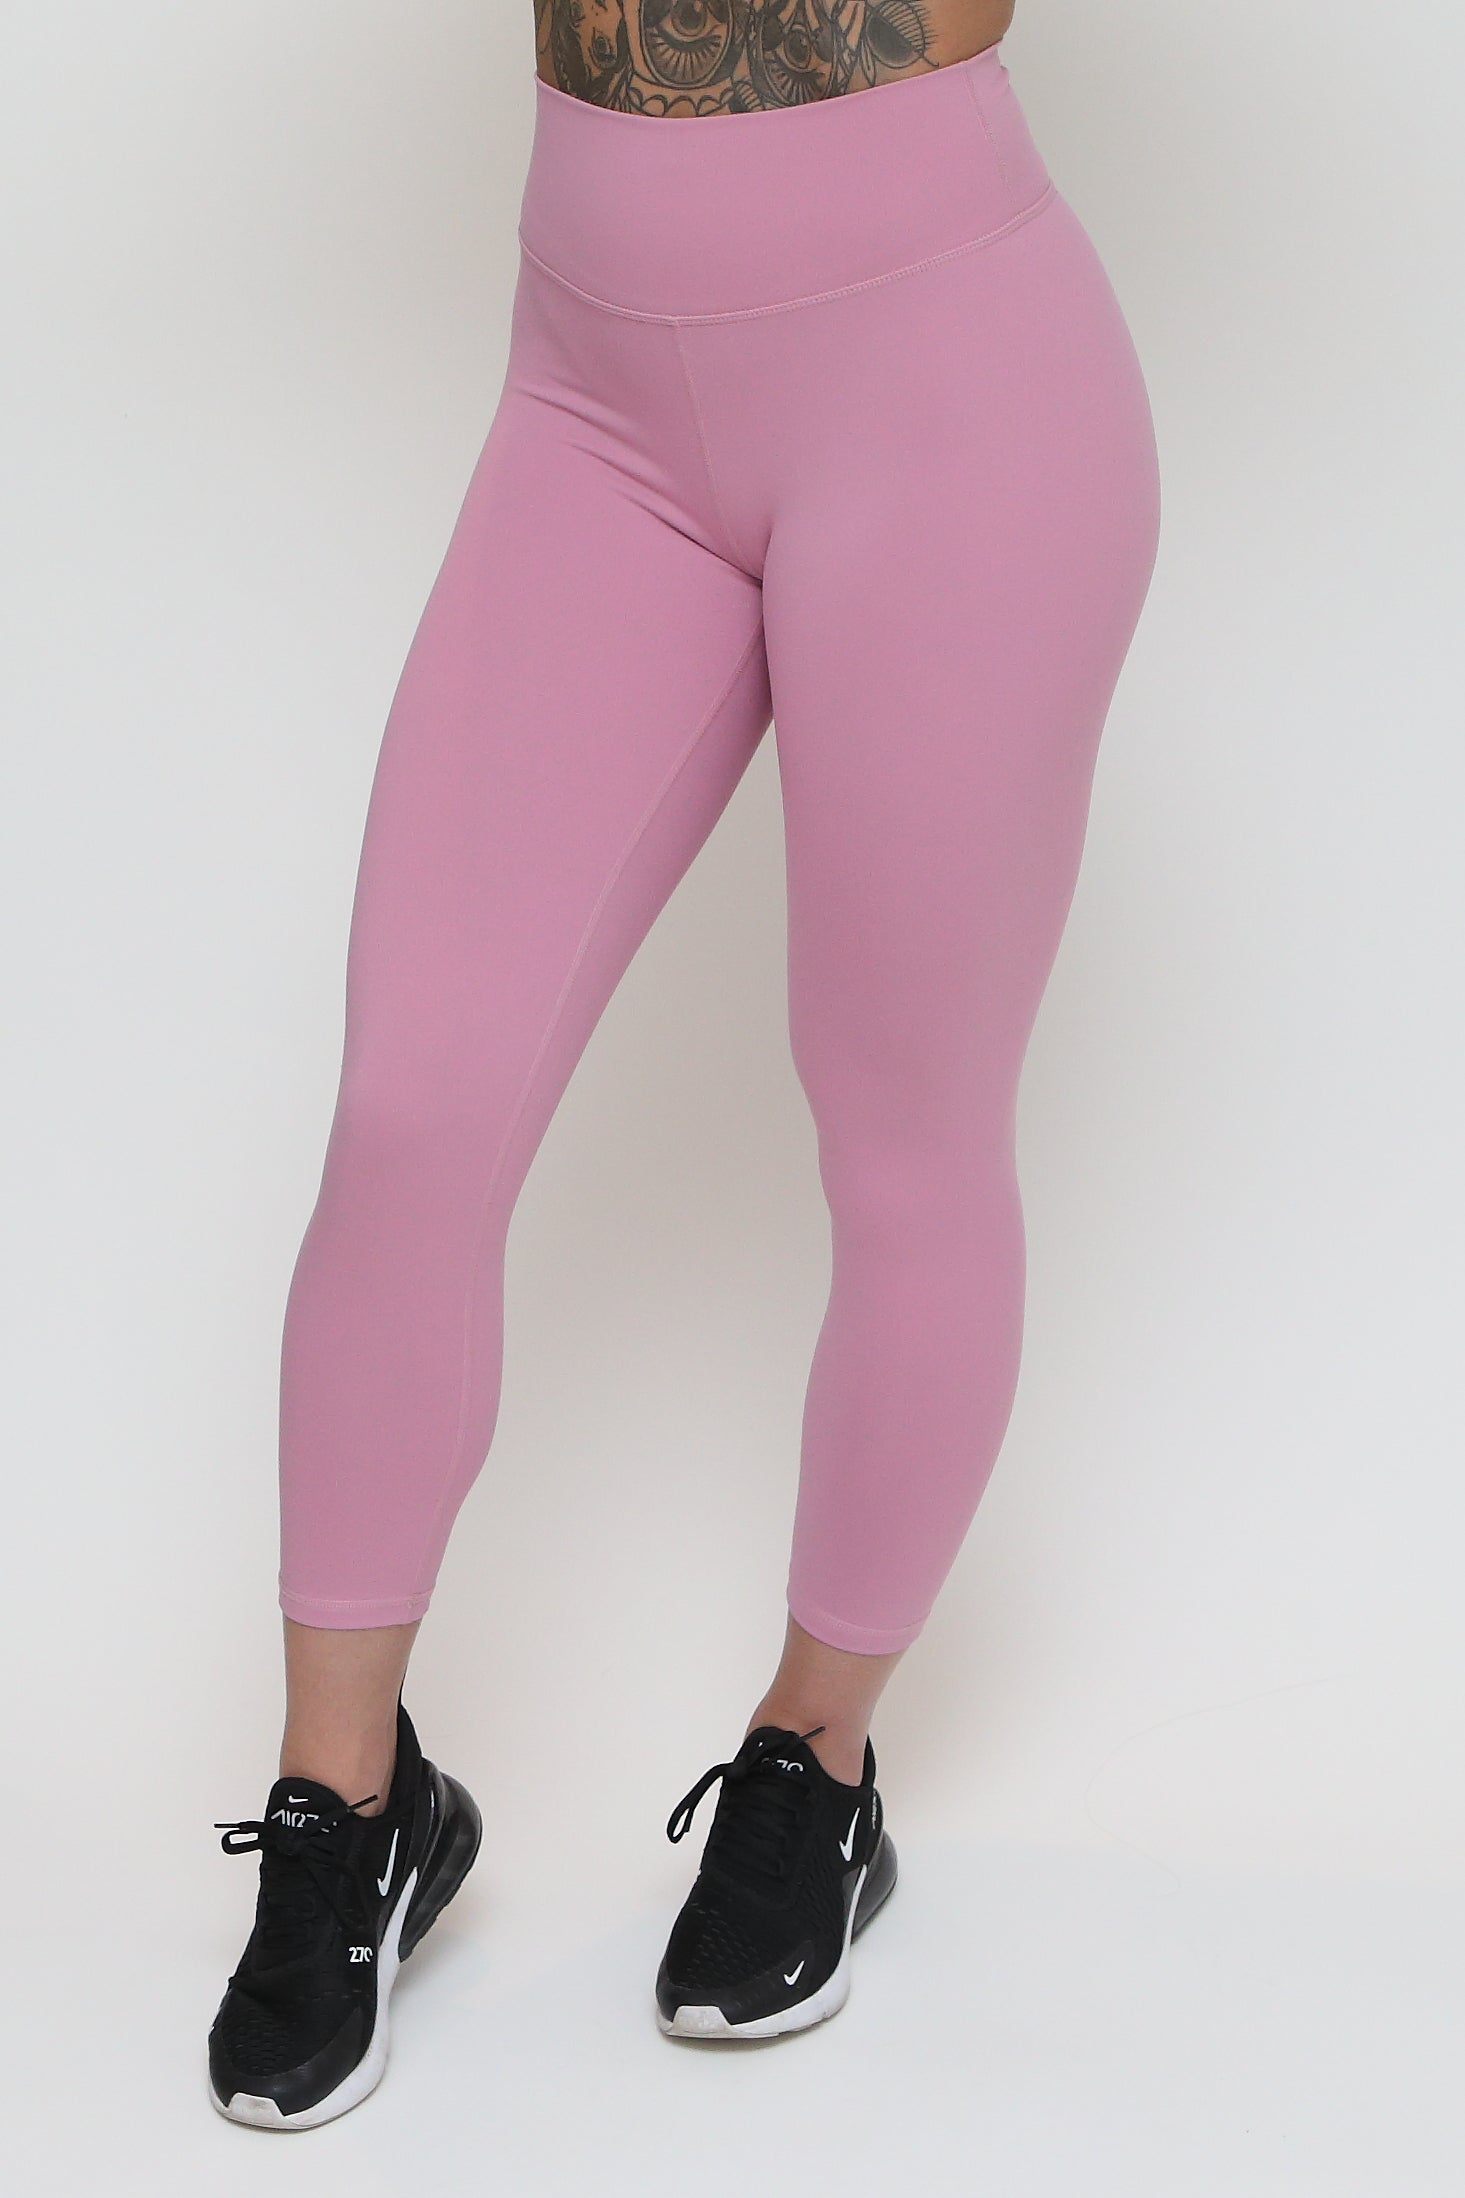 7/8 Scrunch Tights - Pink